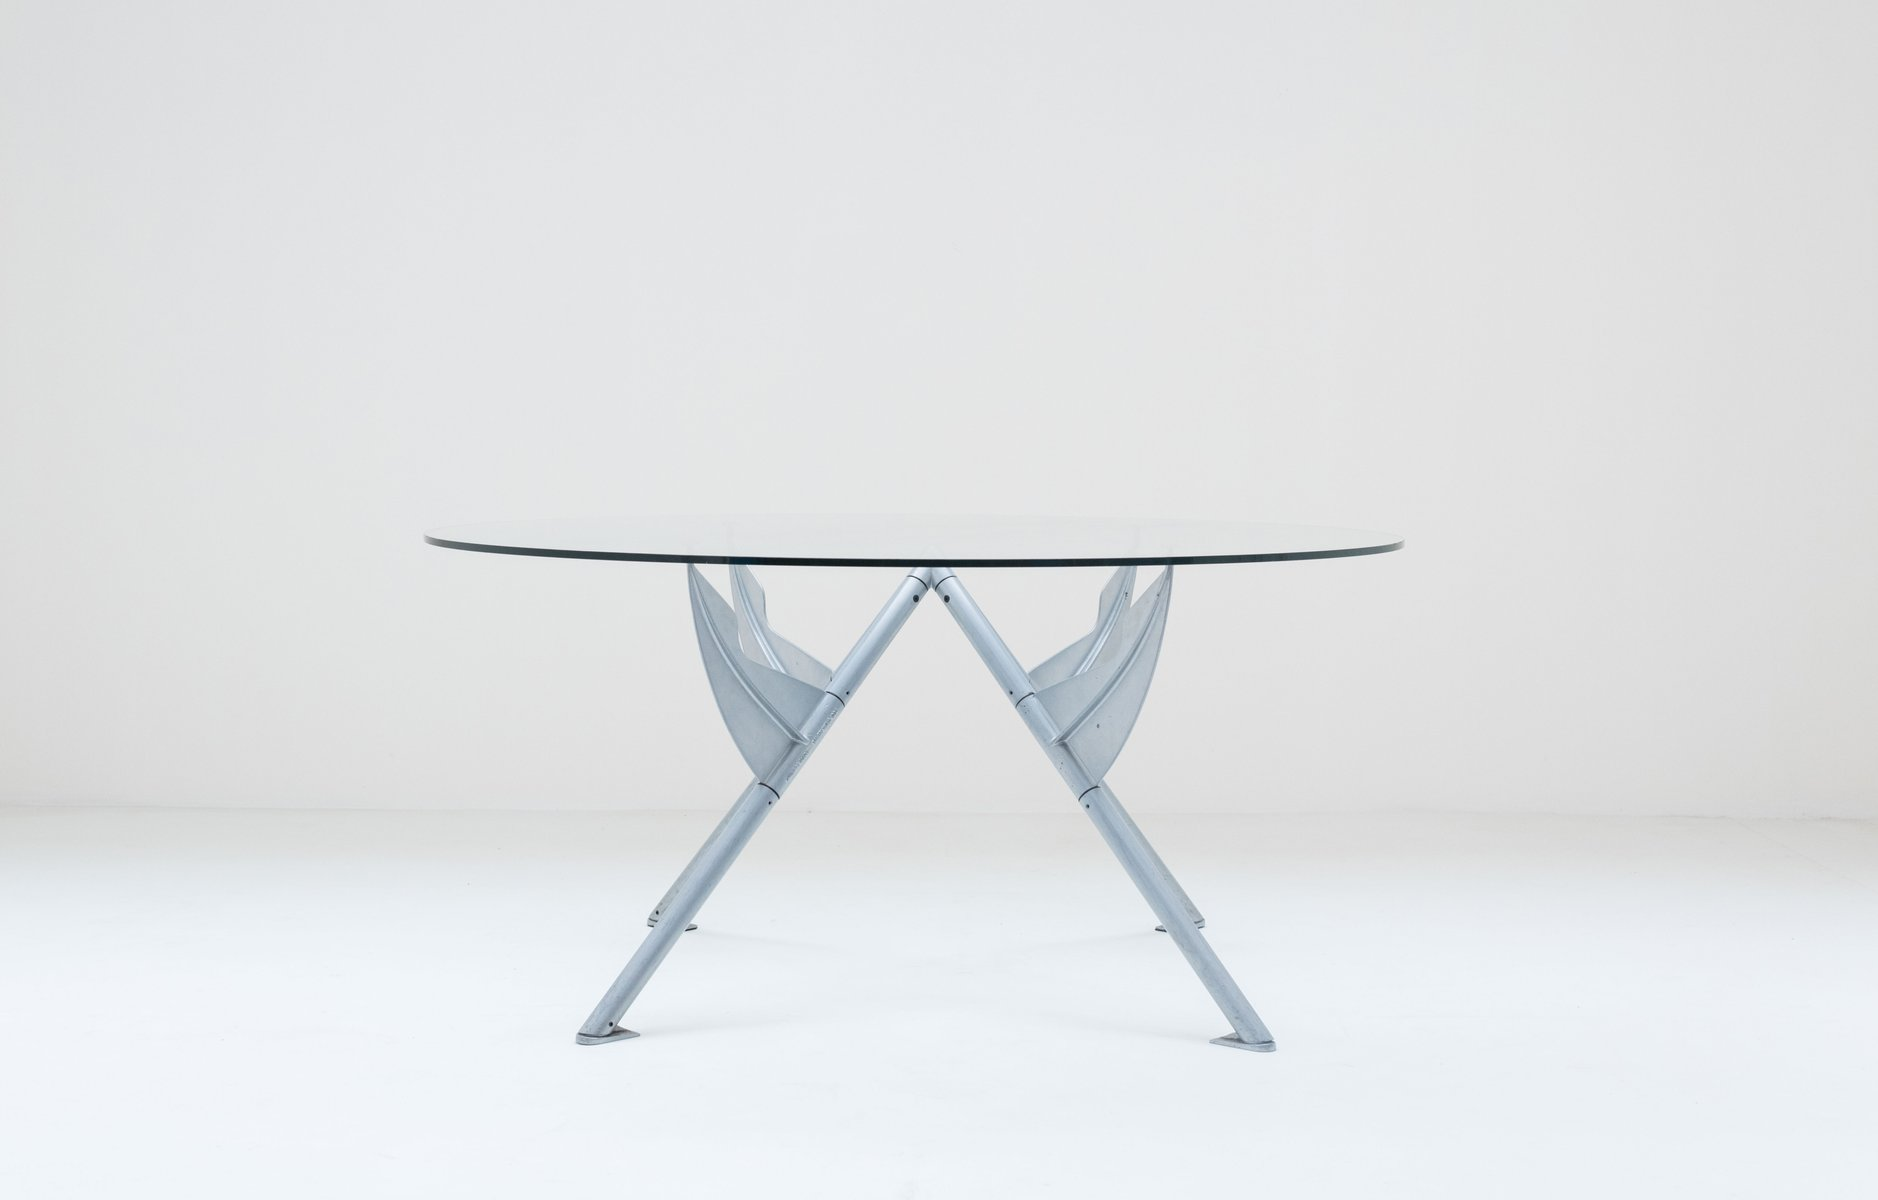 Dining Table By Philippe Starck For Cerruti Baleri 1984